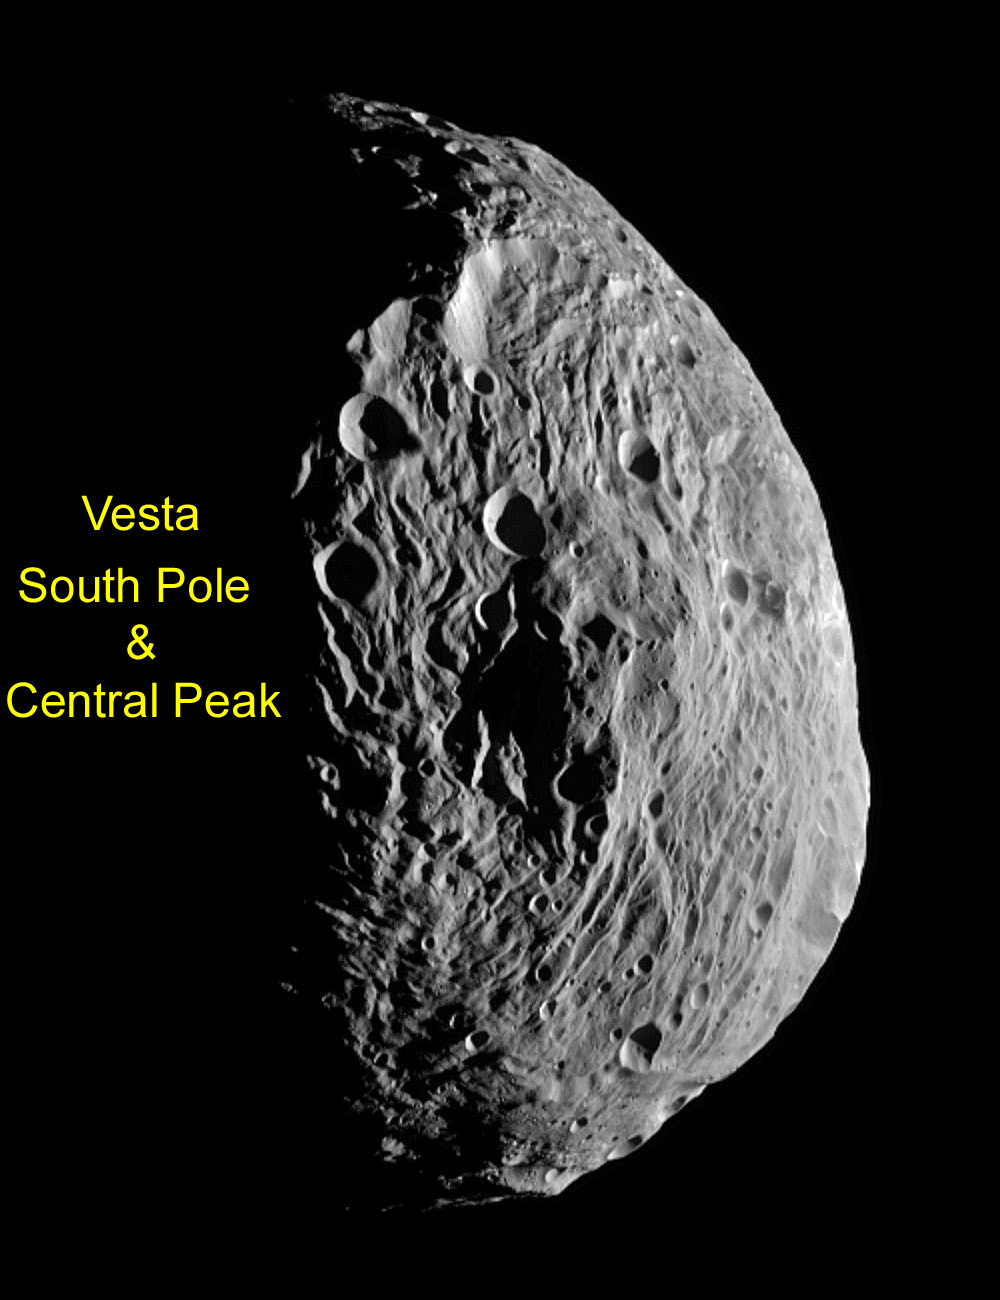 South Polar Region of Vesta - Enhanced View. NASA's Dawn spacecraft obtained this image centered on the south pole of Vesta with its framing camera on July 18, 2011. The image has been enhanced to bring out more surface details. It was taken from a distance of about 6,500 miles (10,500 kilometers) away from the protoplanet Vesta. The smallest detail visible is about 1.2 miles (2.0 km).  Credit: NASA/JPL-Caltech/UCLA/MPS/DLR/IDA. Enhanced and annotated by Ken Kremer